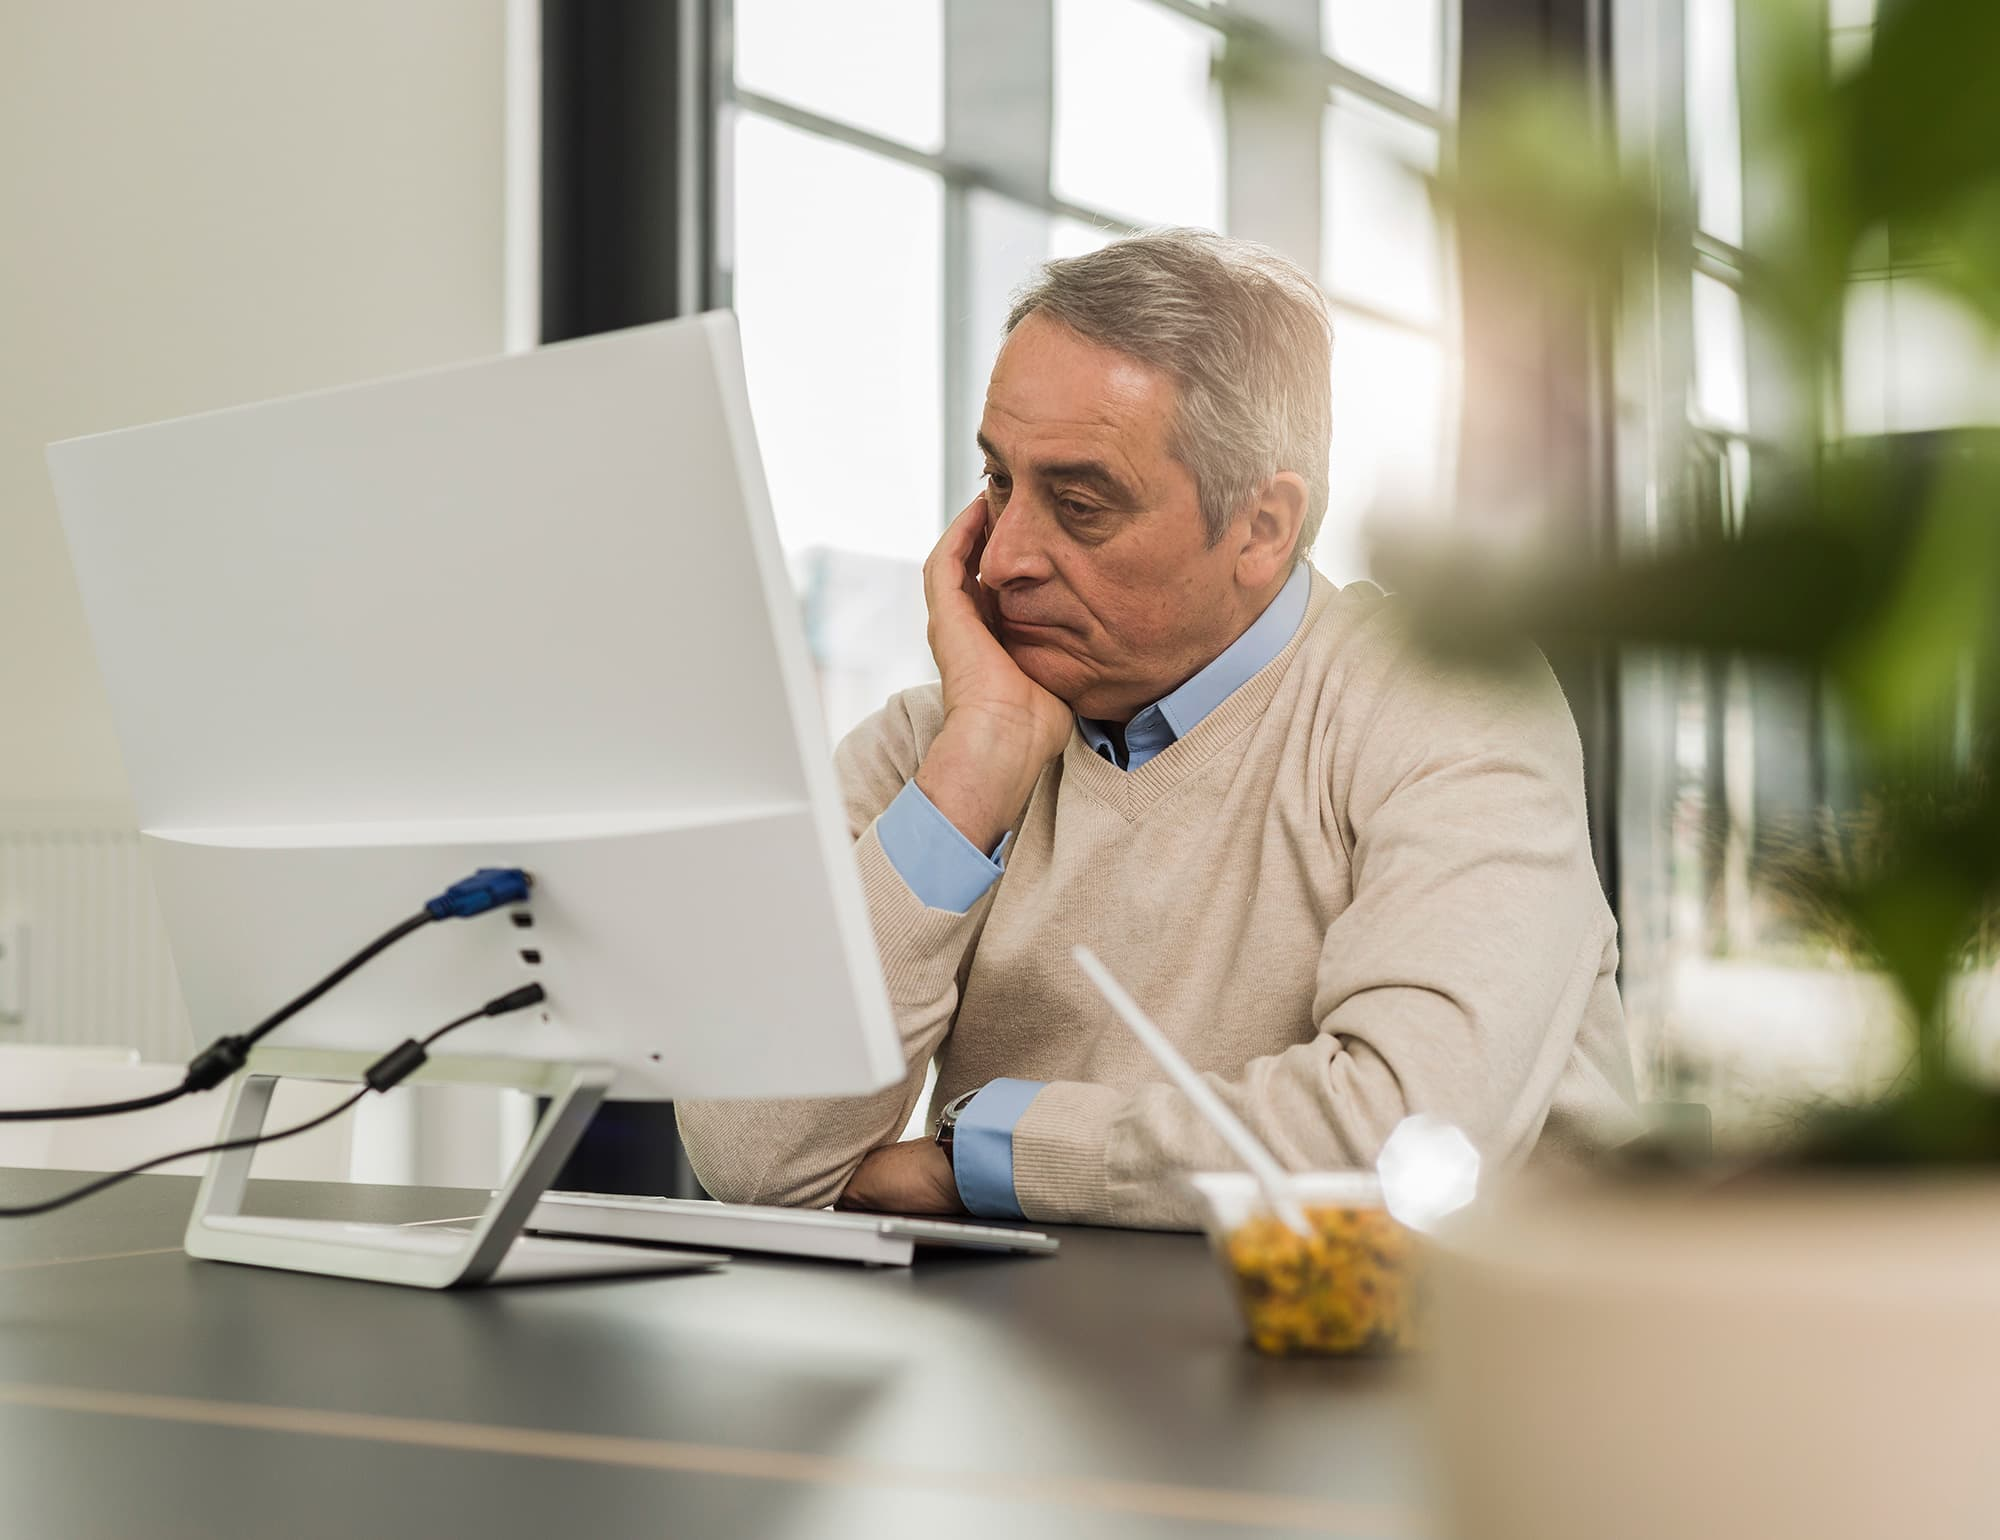 Baby boomers will be the fastest-growing generation in the workforce next year, Glassdoor claims